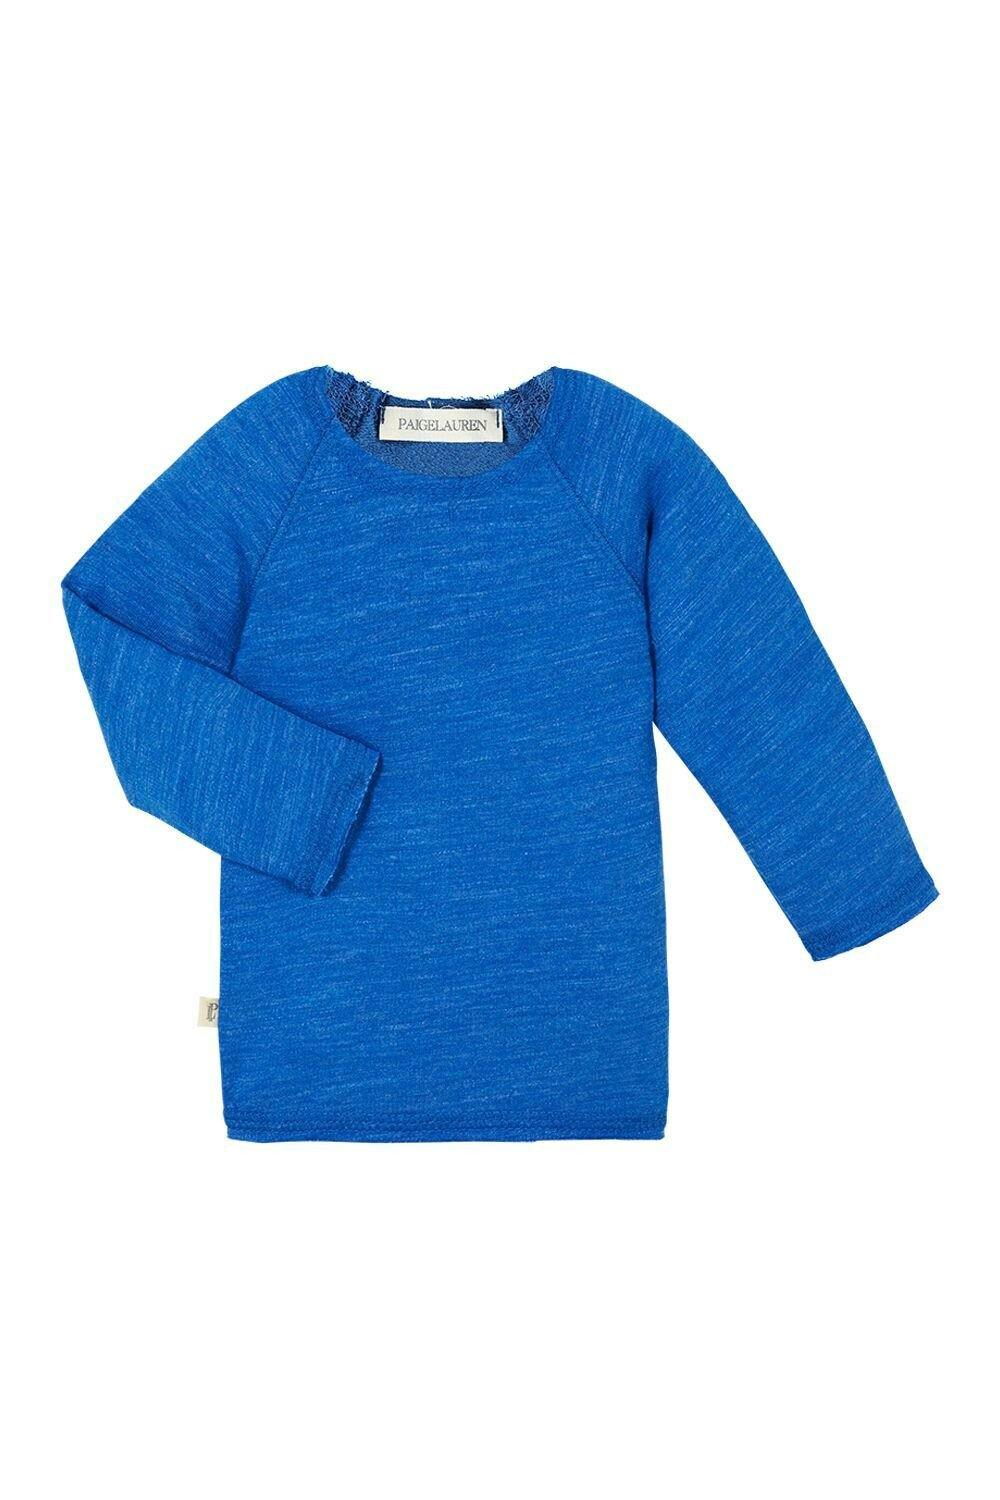 Baby L/S Pullover - City